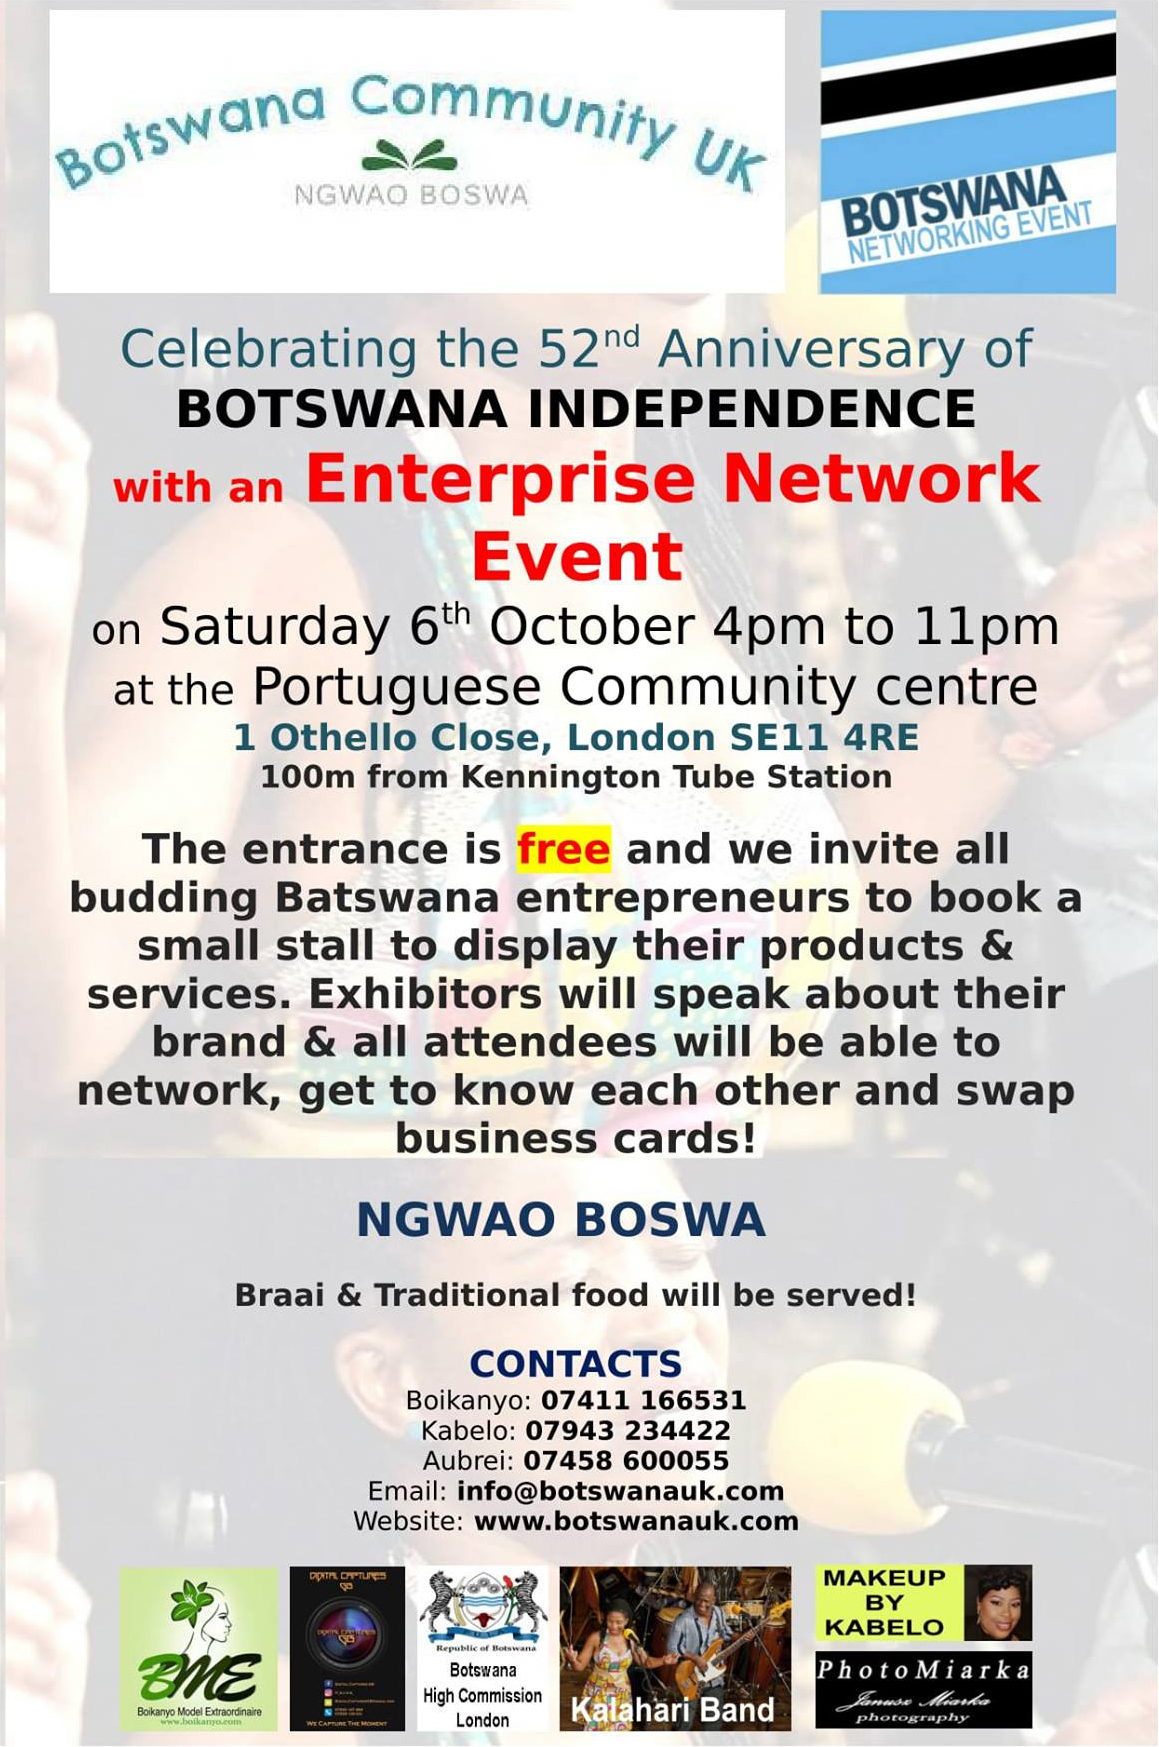 Botswana Network Event in London Celebrating 52 Years of Independence